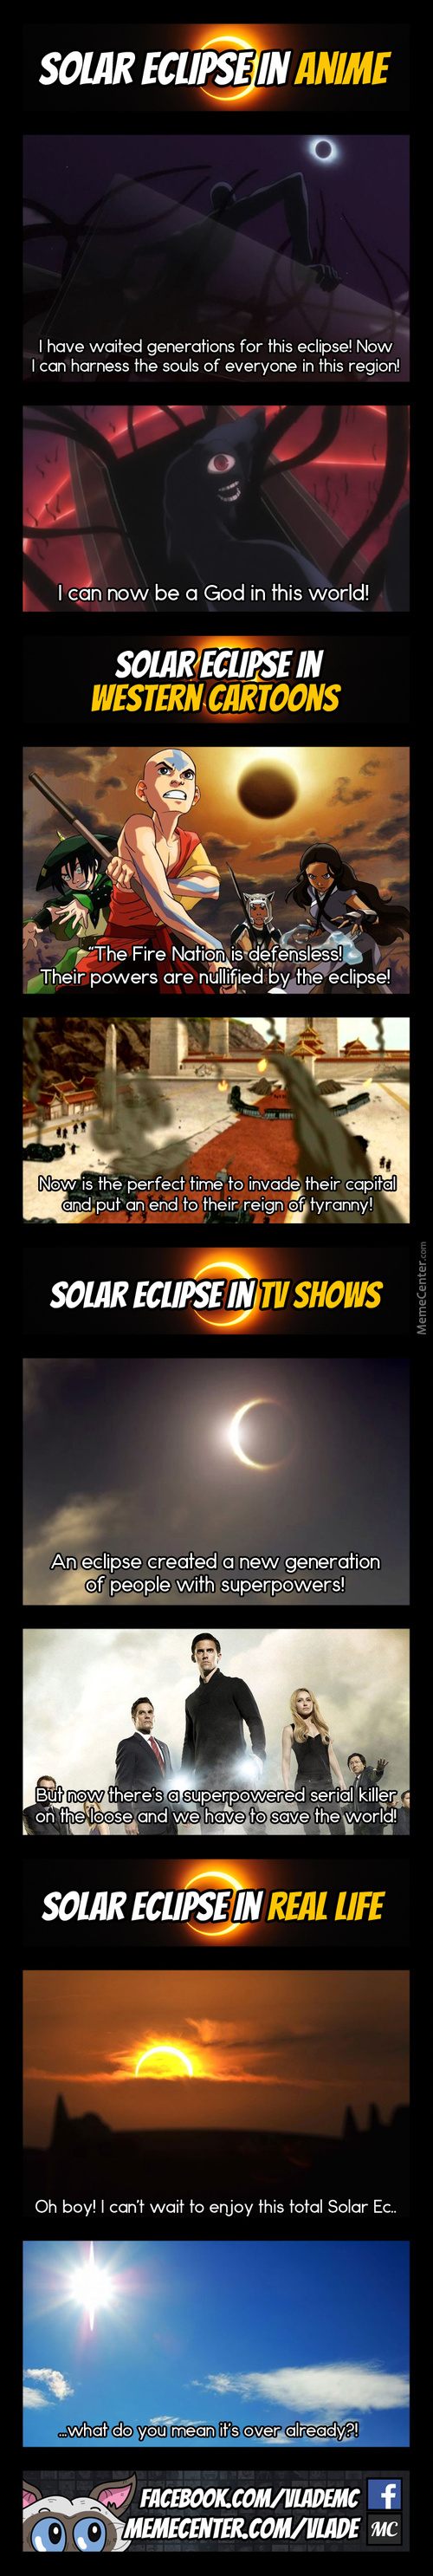 Are You Guys Ready For The Eclipse?